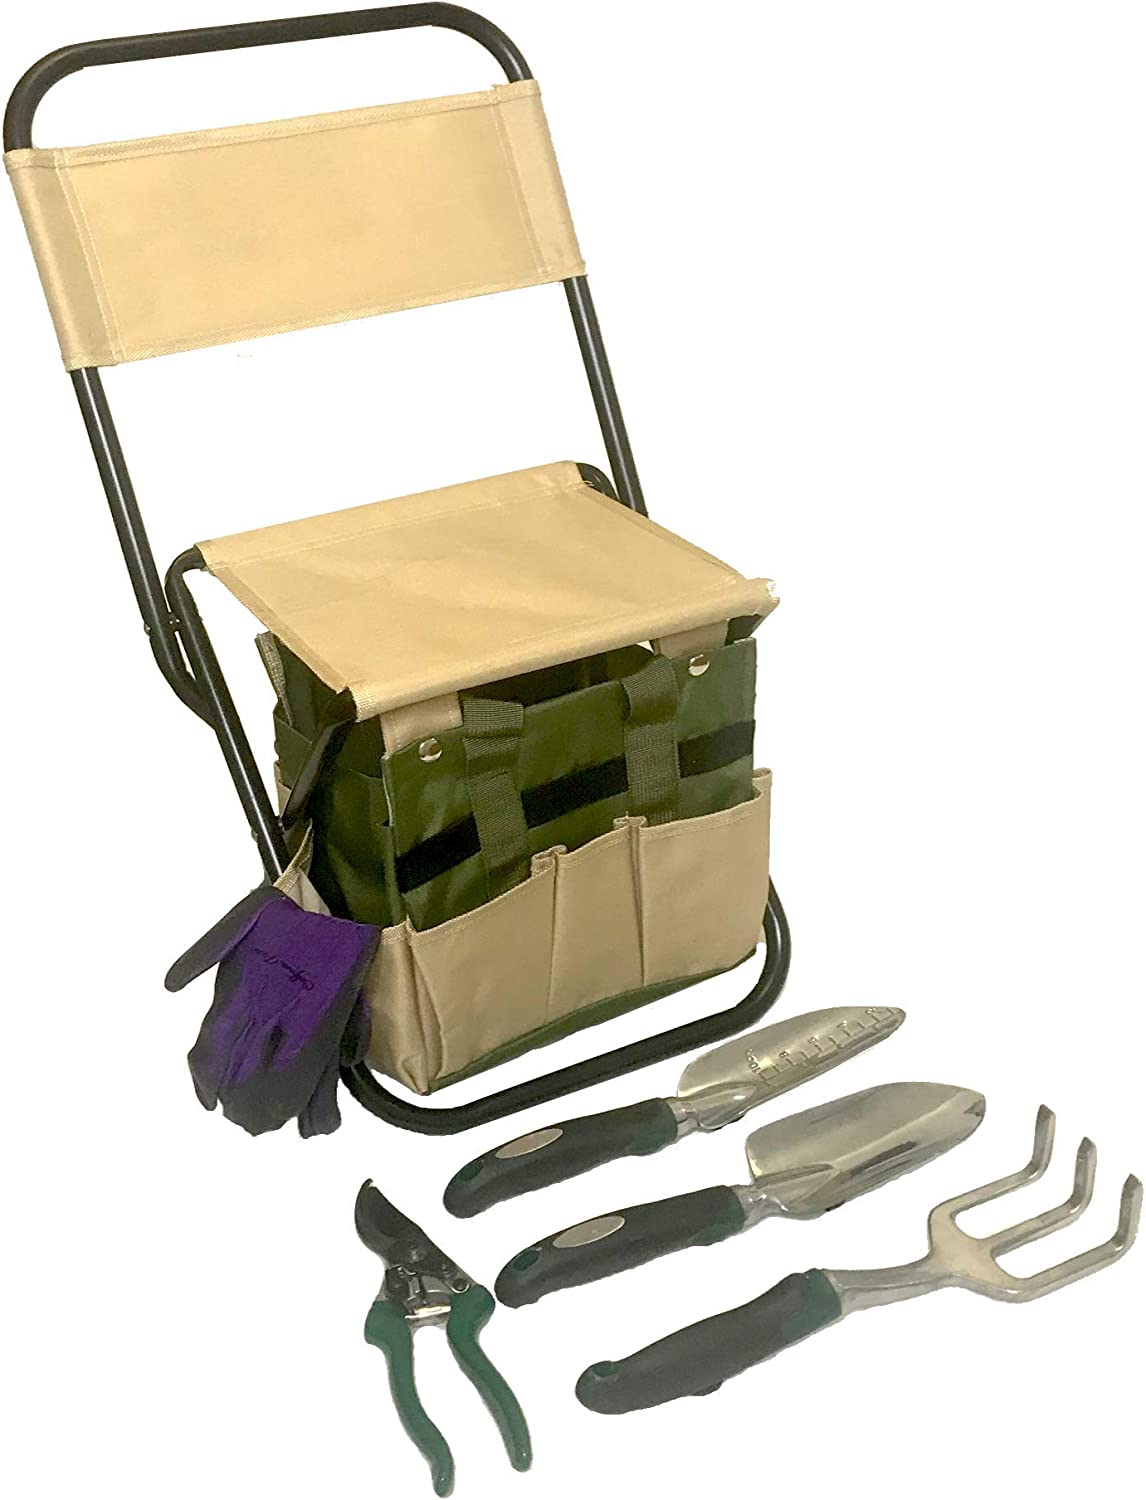 Garden Tool Set Organizer | Garden Seat Folding Stool Gardening Chair Kneeler with Backing | Gardener Bag | Gardening Tools Set | Top Gardening Gifts for Mom and Dad Includes Aluminum Tools